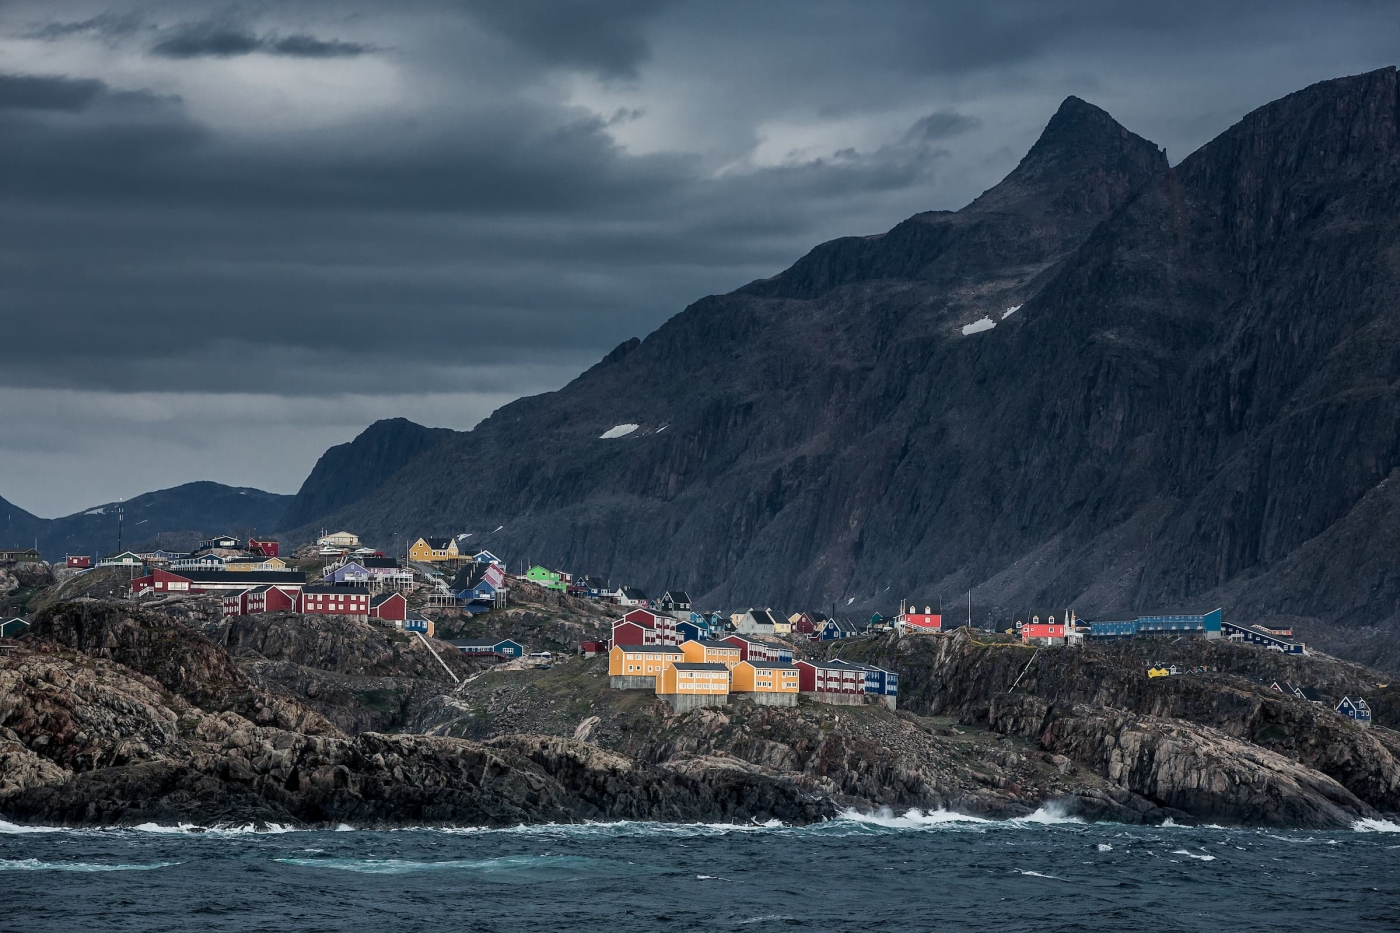 A windy and cloudy day in Sisimiut in Greenland. By Mads Pihl